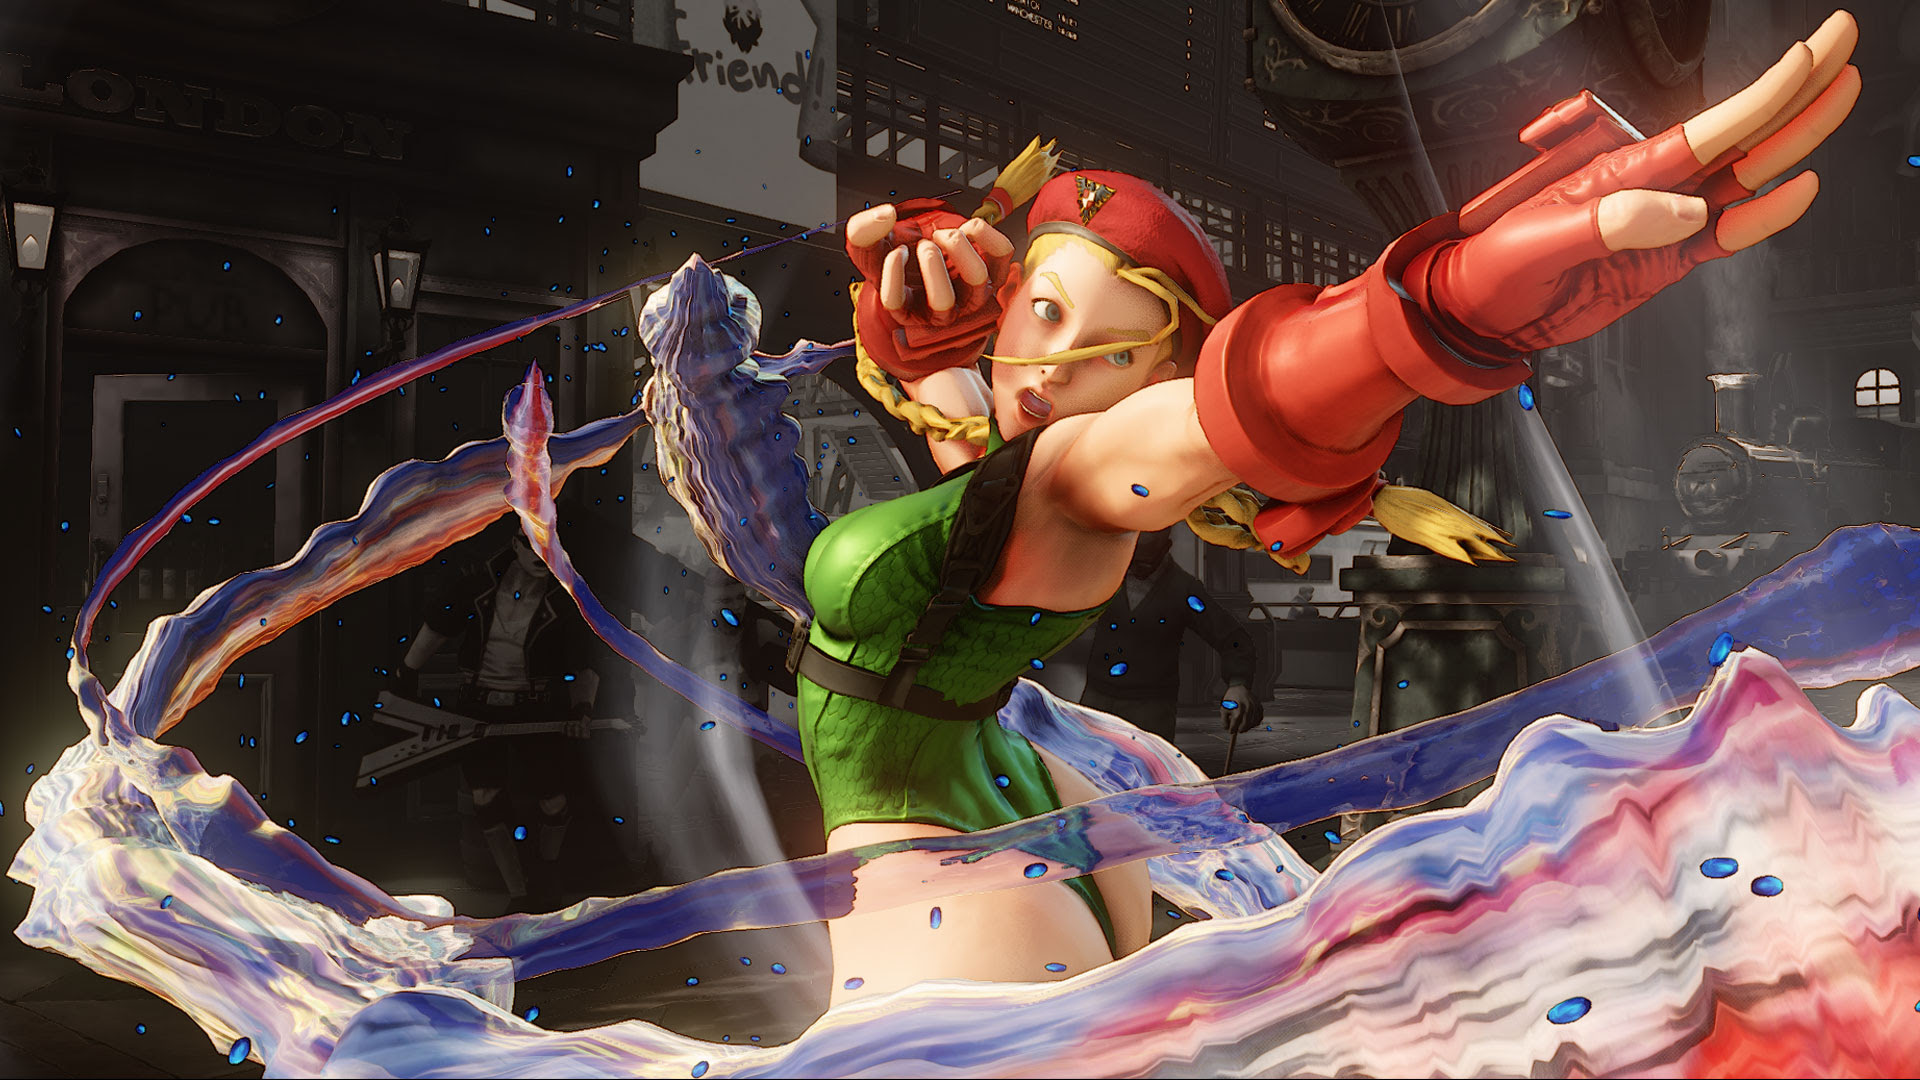 ESPN had an EVO finalist change Cammy's revealing outfit for broadcast screenshot